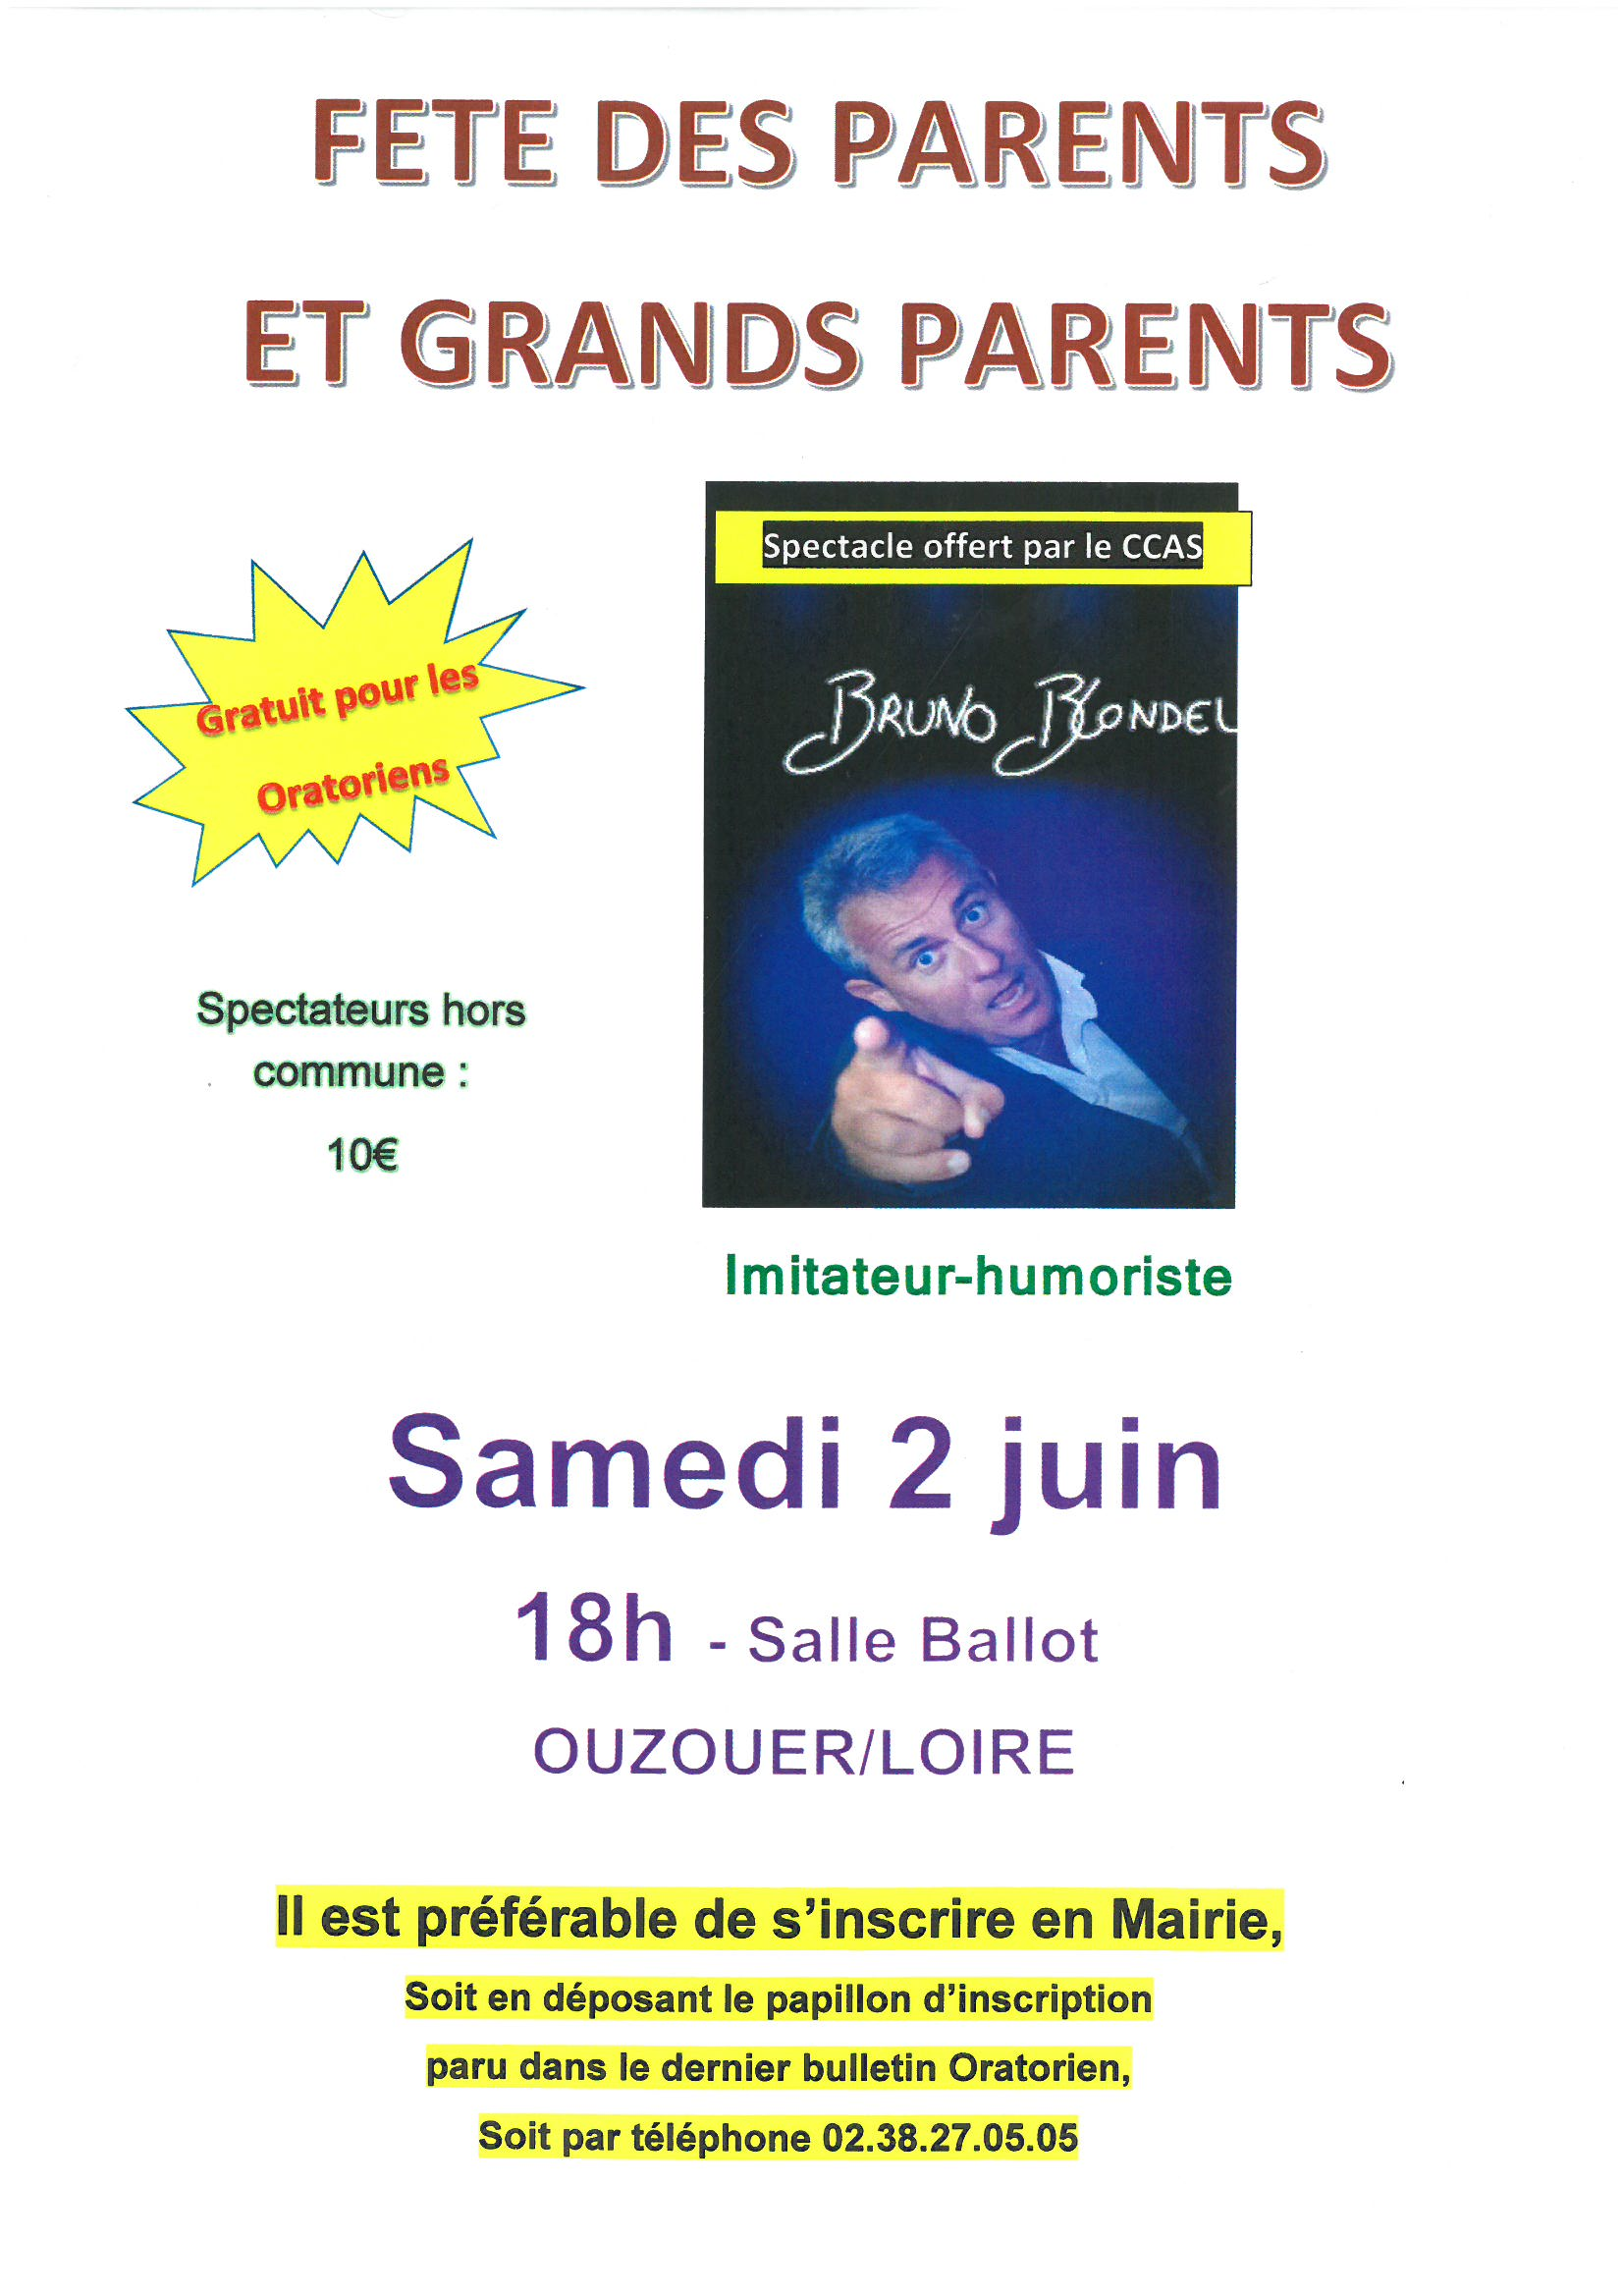 FETES DES PARENTS ET DES GRANDS PARENTS